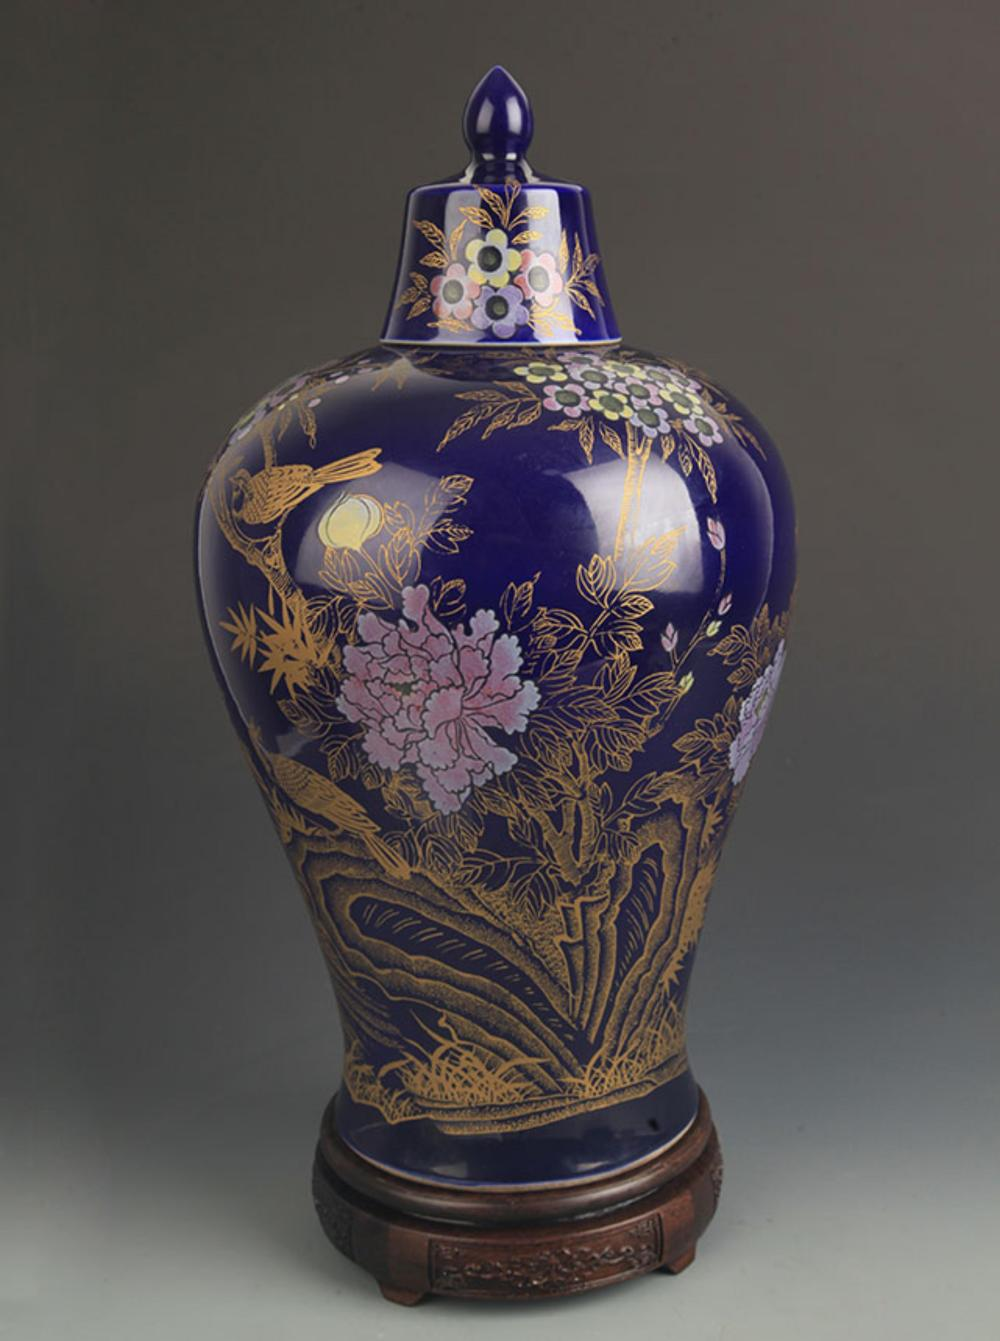 A LARGE DARK BLUE GLAZE GILT BIRD PAINTED MEI STYLE VASE